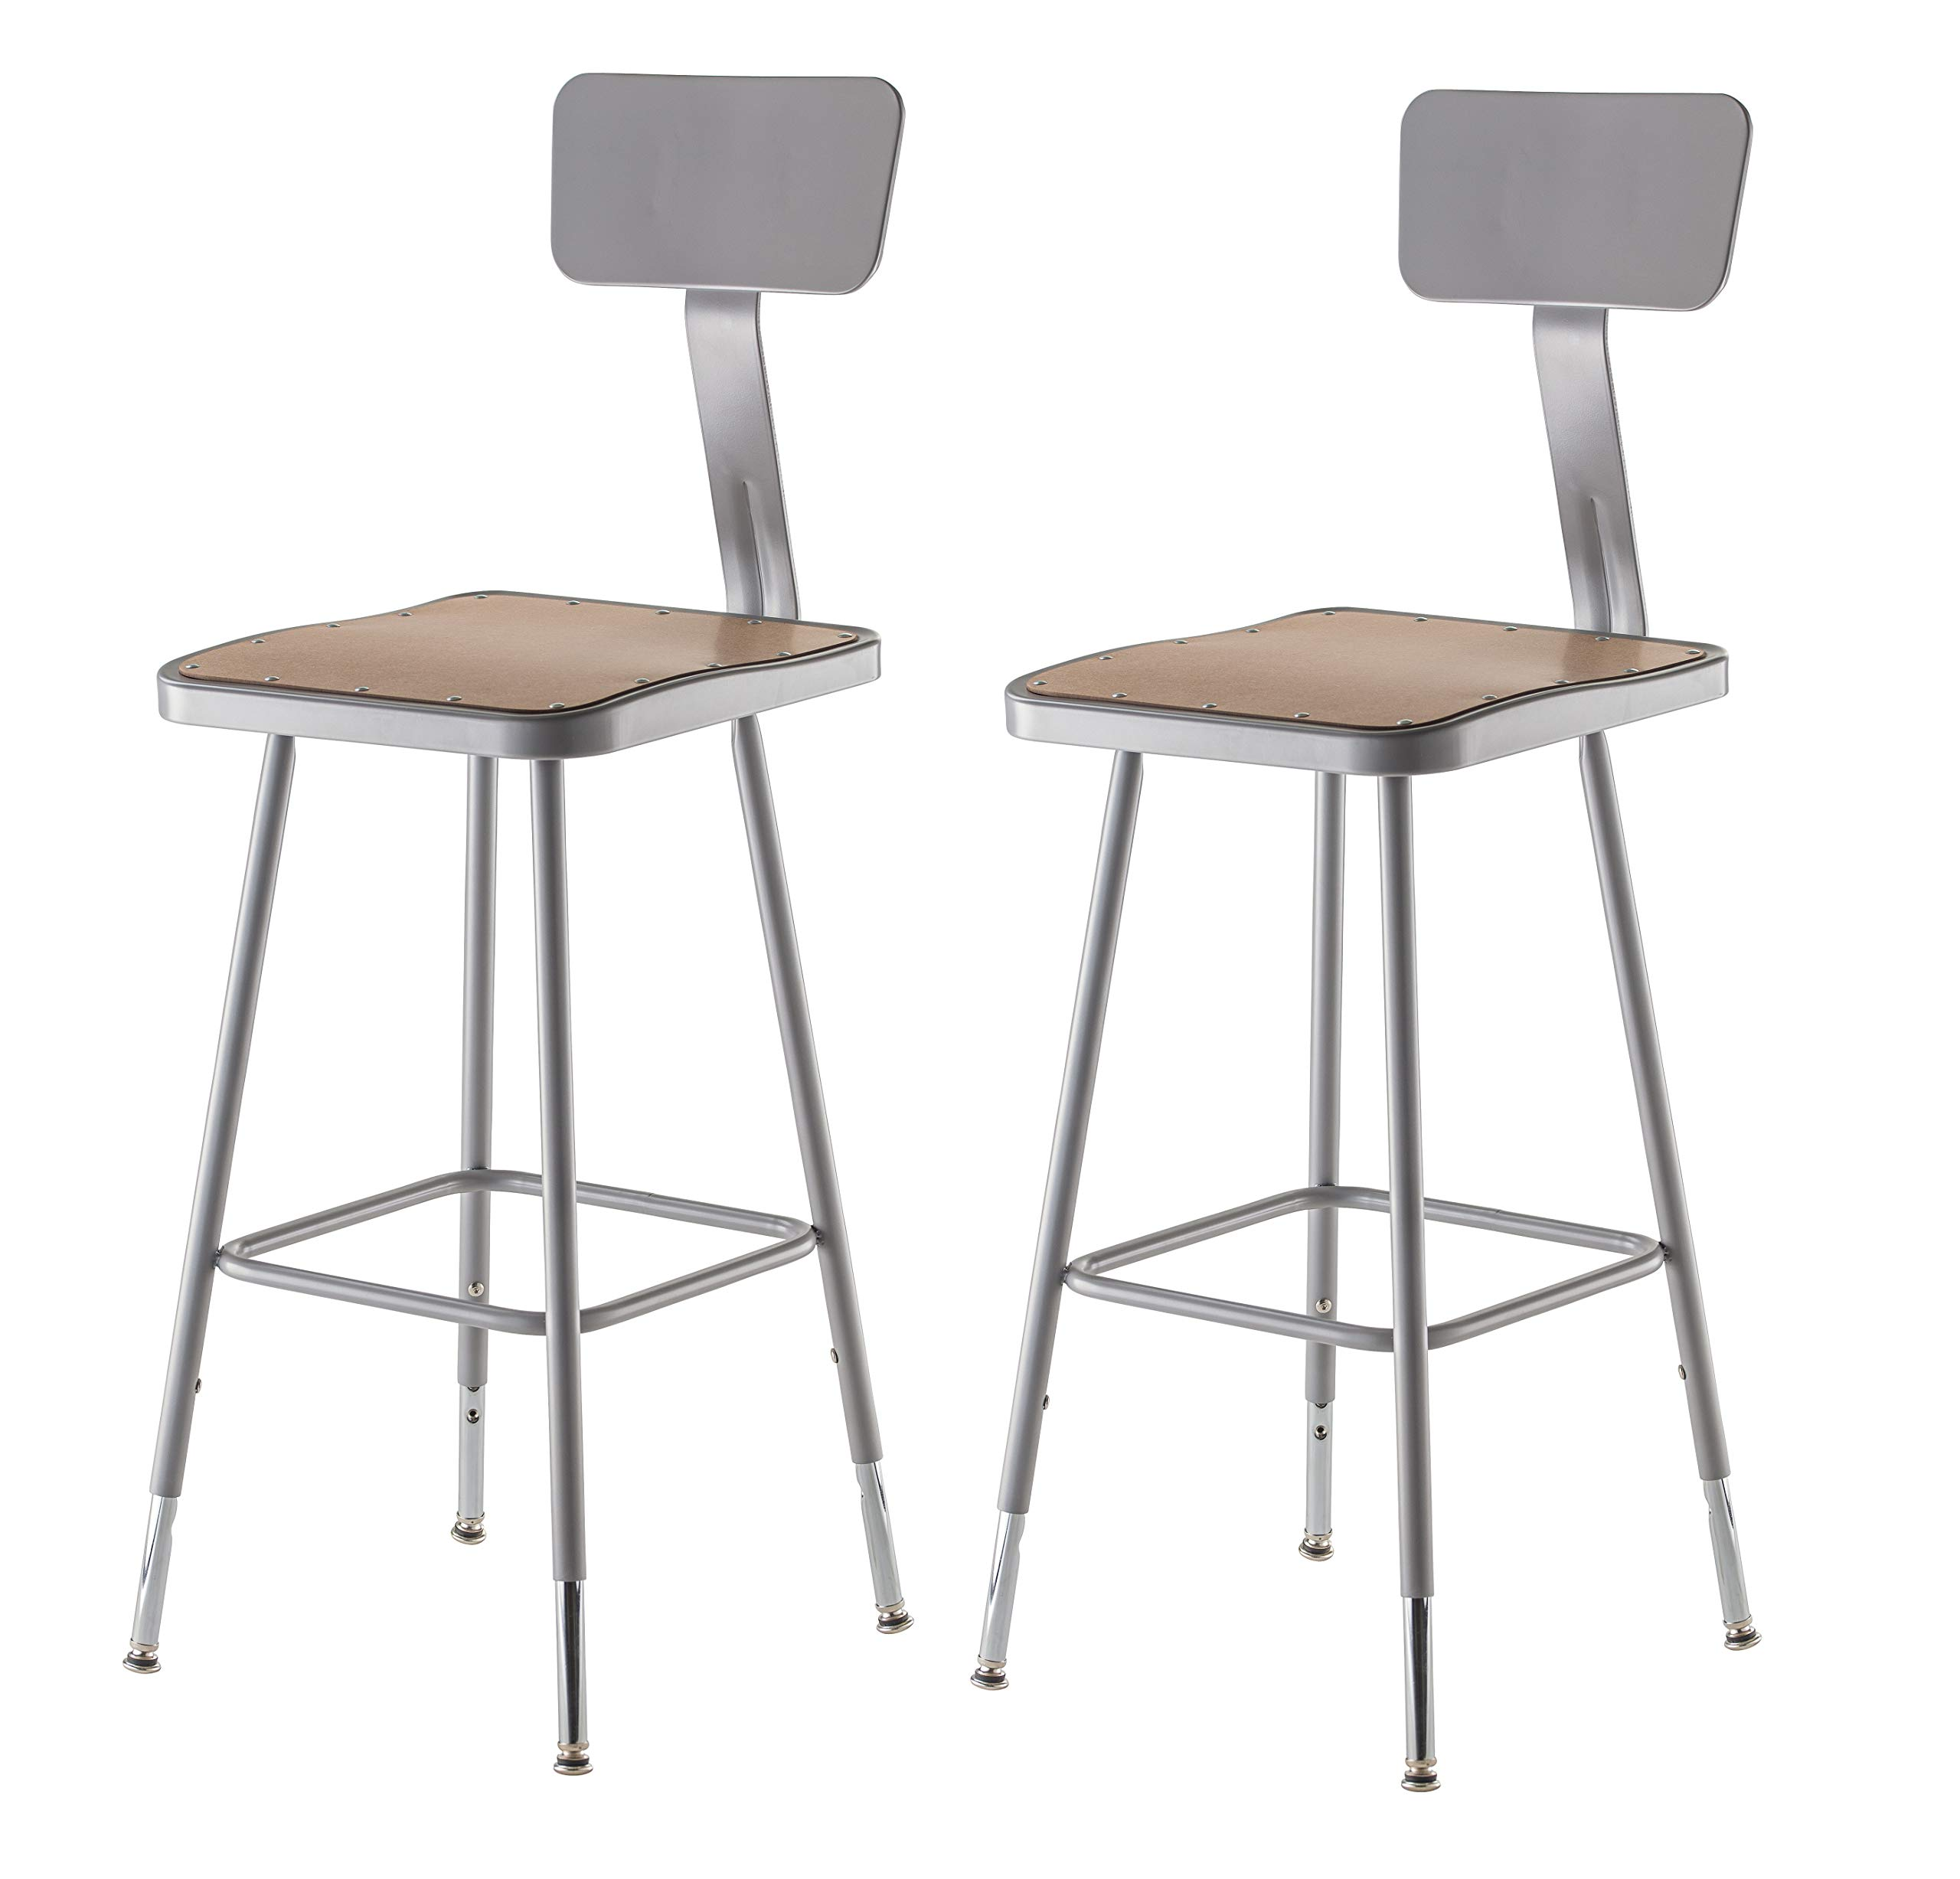 National Public Seating 6324HB-CN Steel Stool with Square Hardboard Seat Adjustable and Backrest, 25''-33'', Grey (Pack of 2)